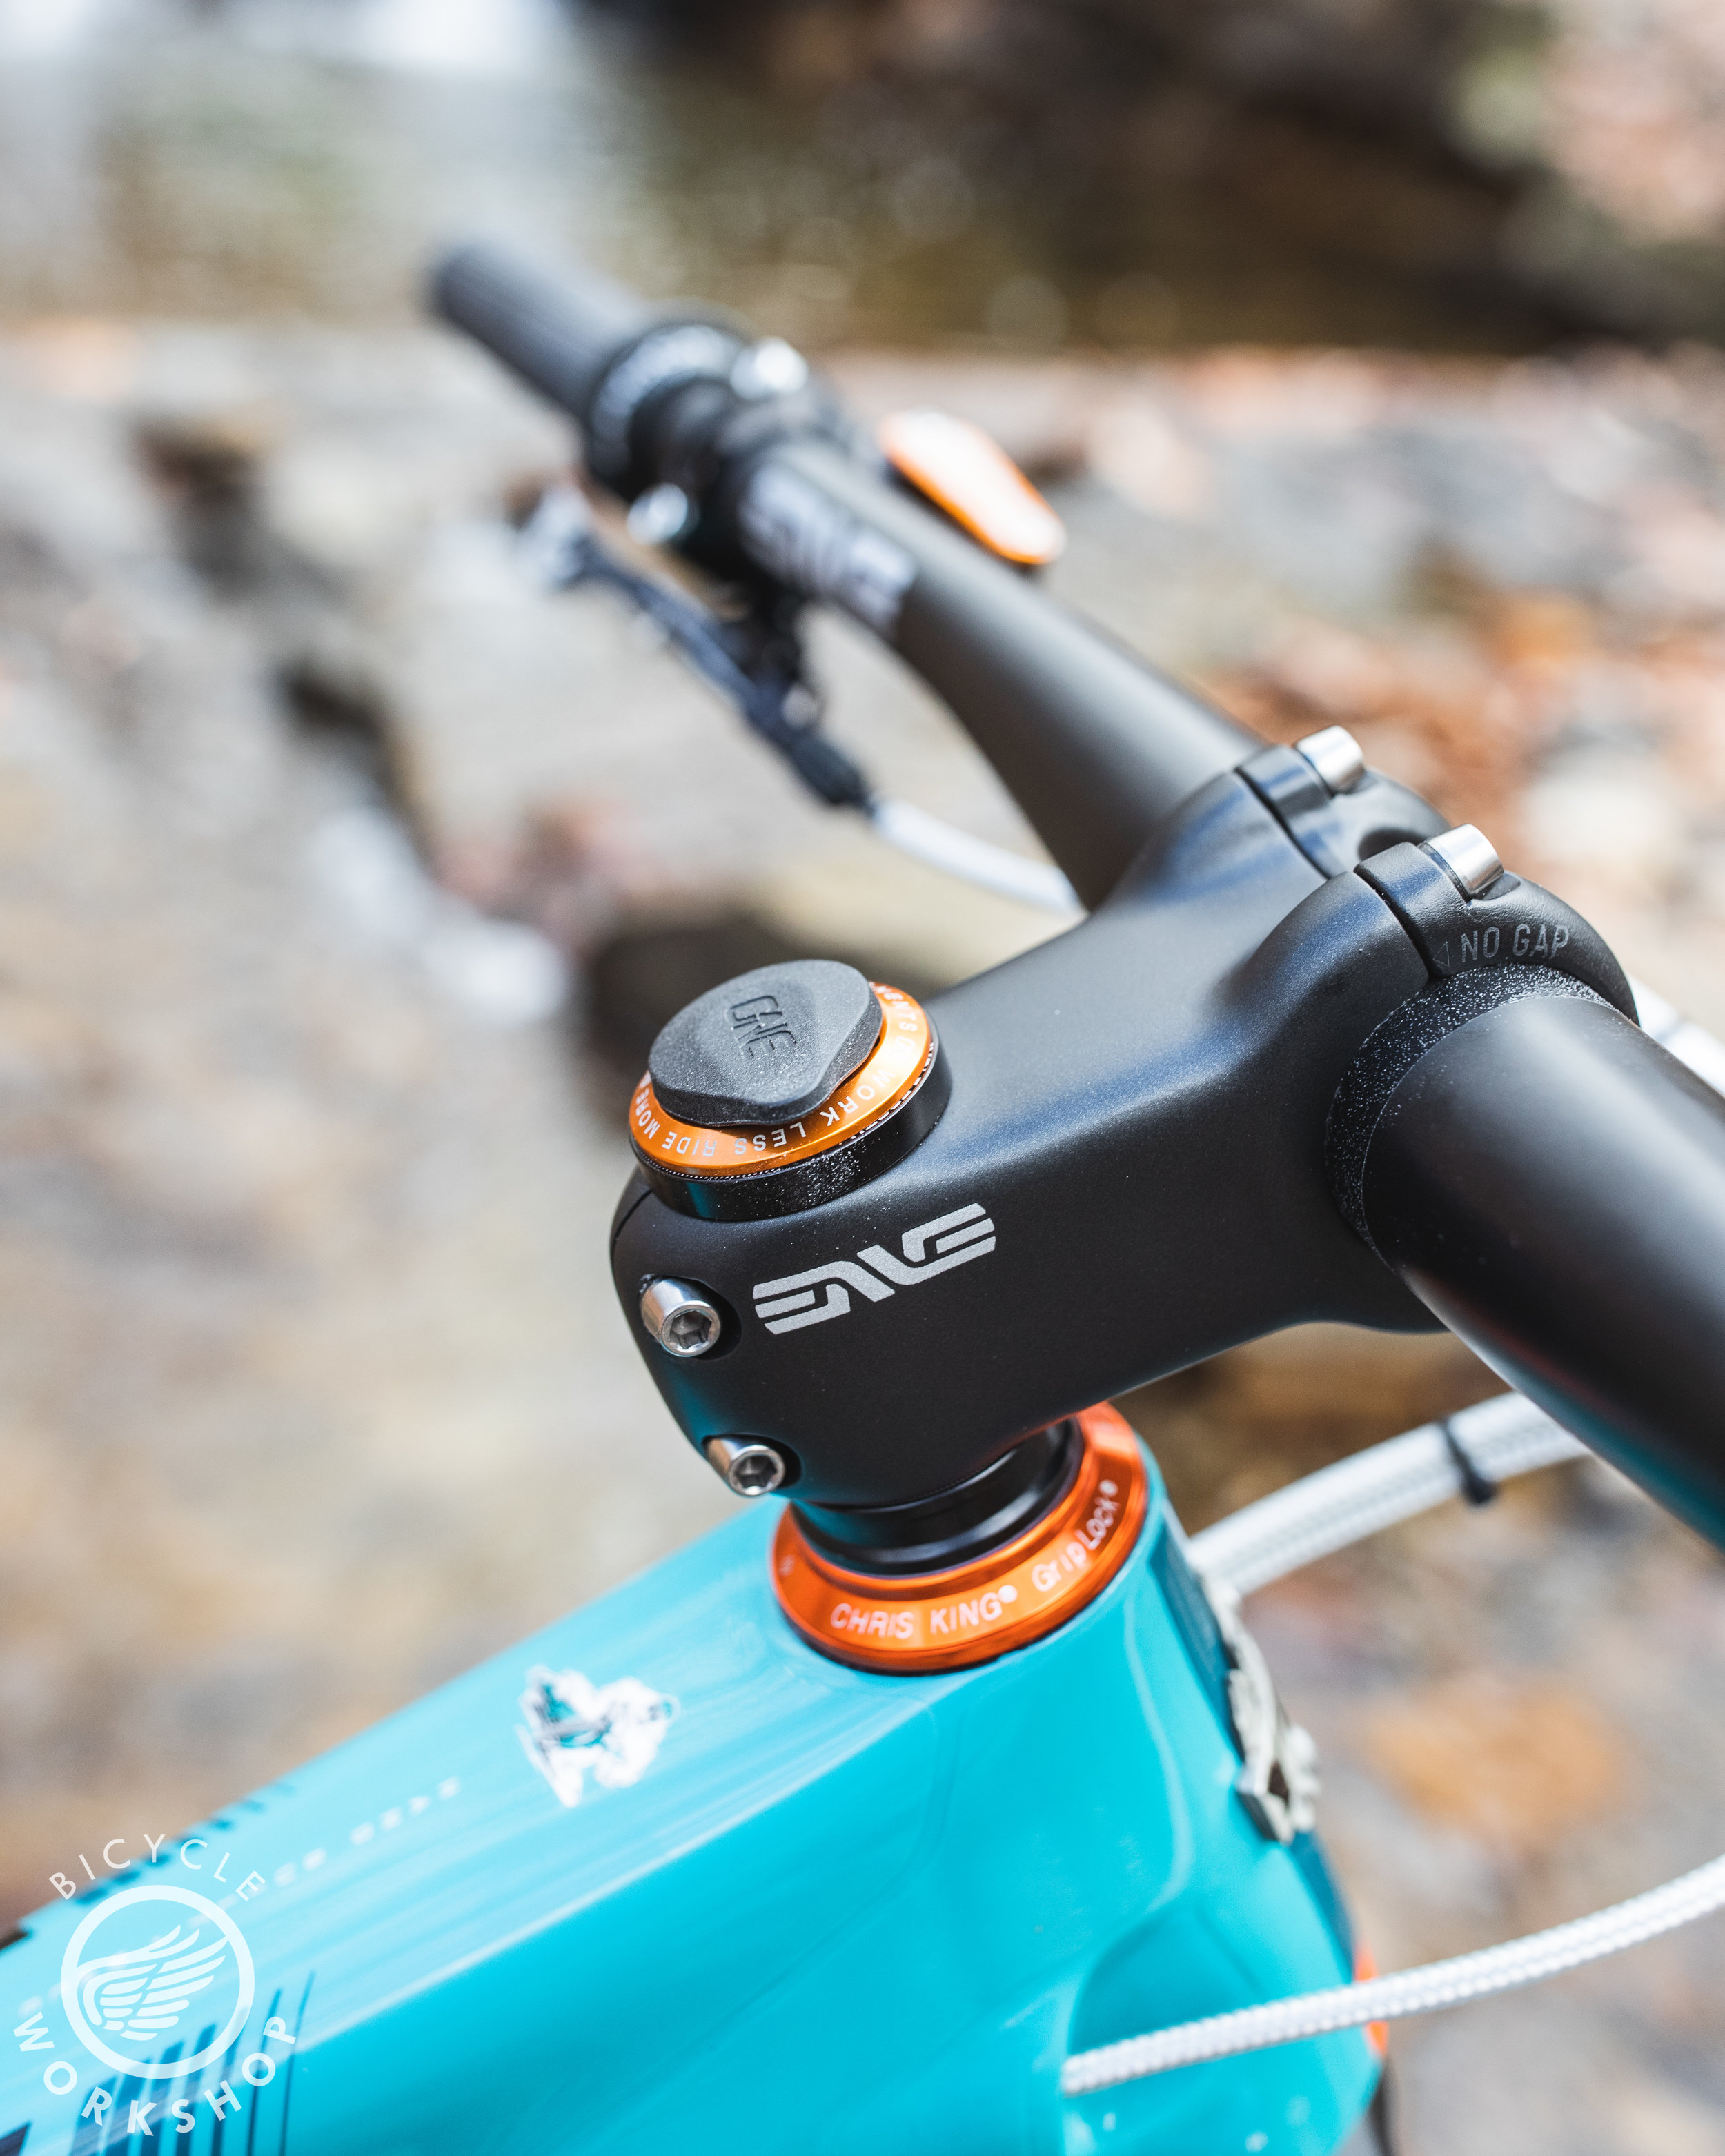 Enve stem with OneUp EDC tool